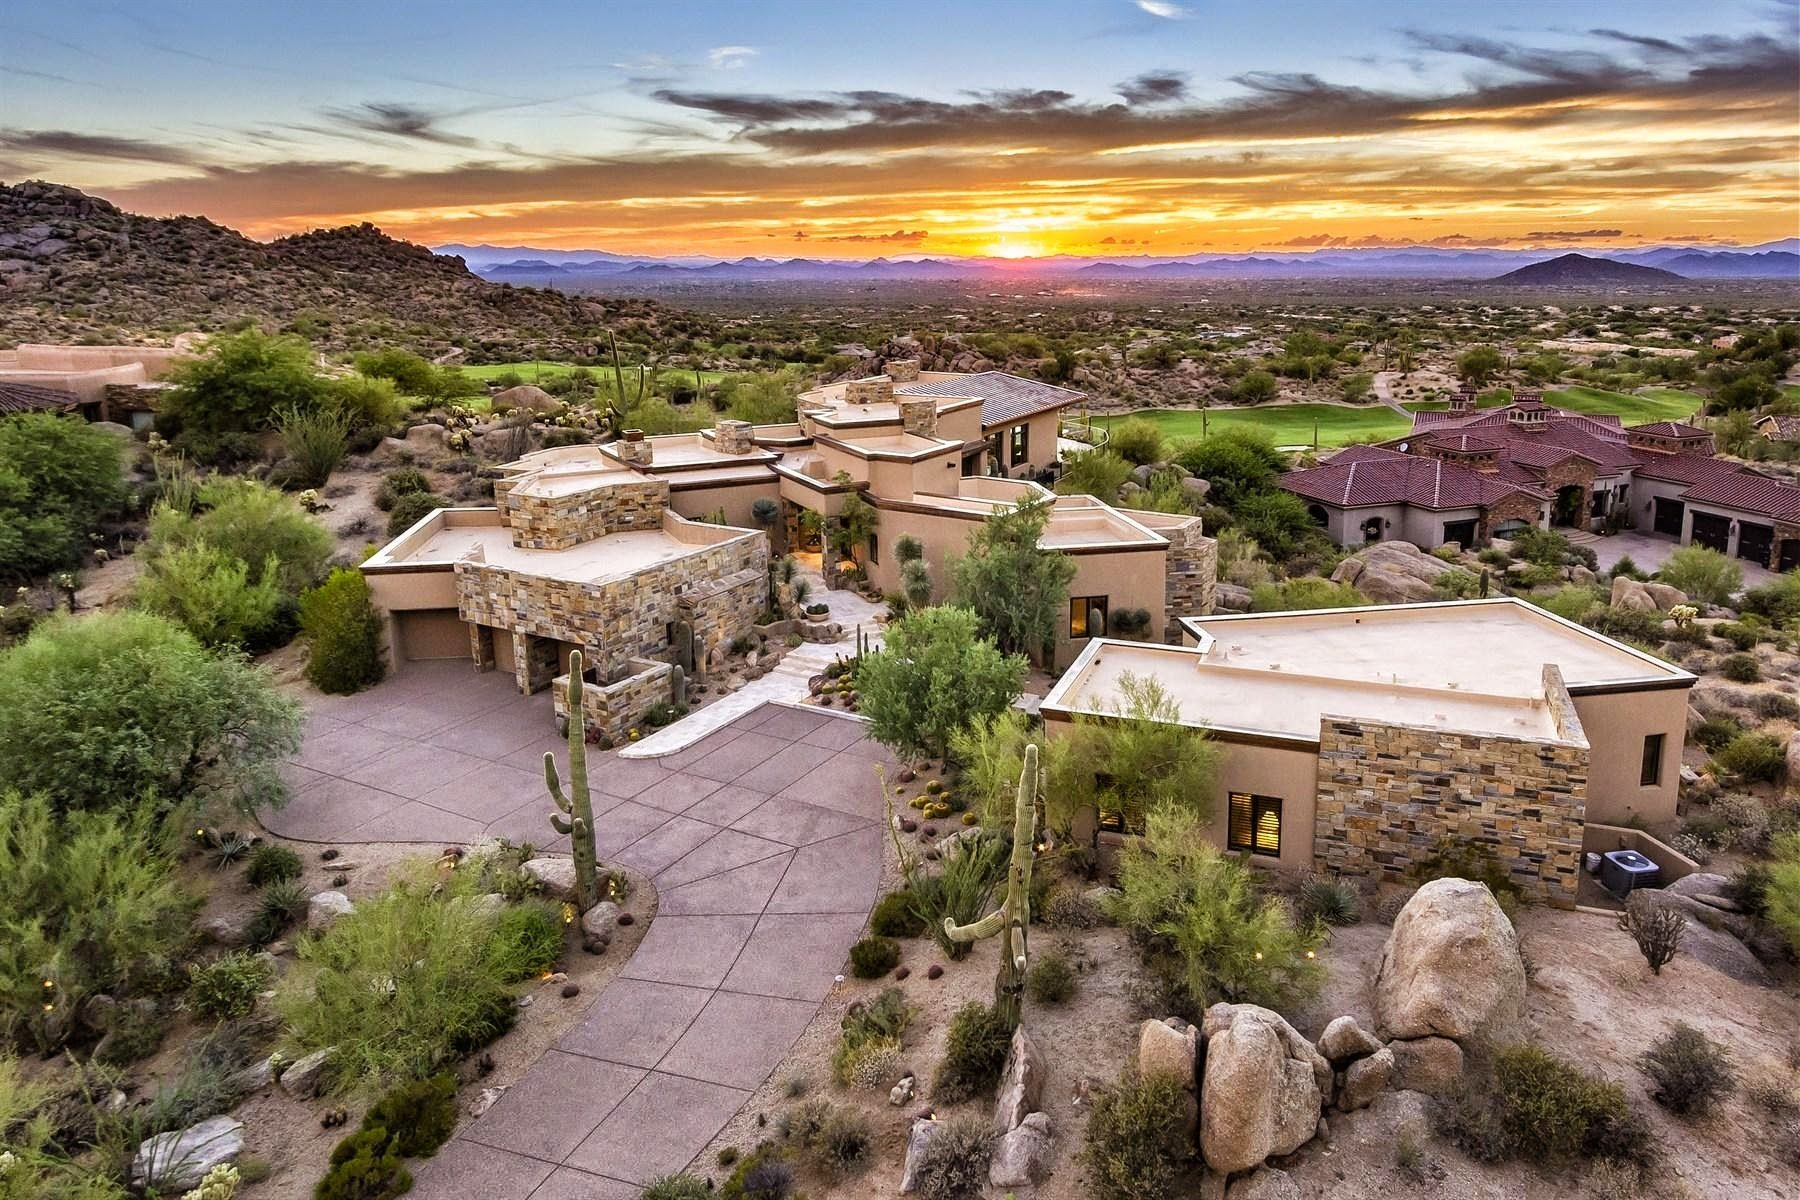 Queen Creek AZ Homes for sale